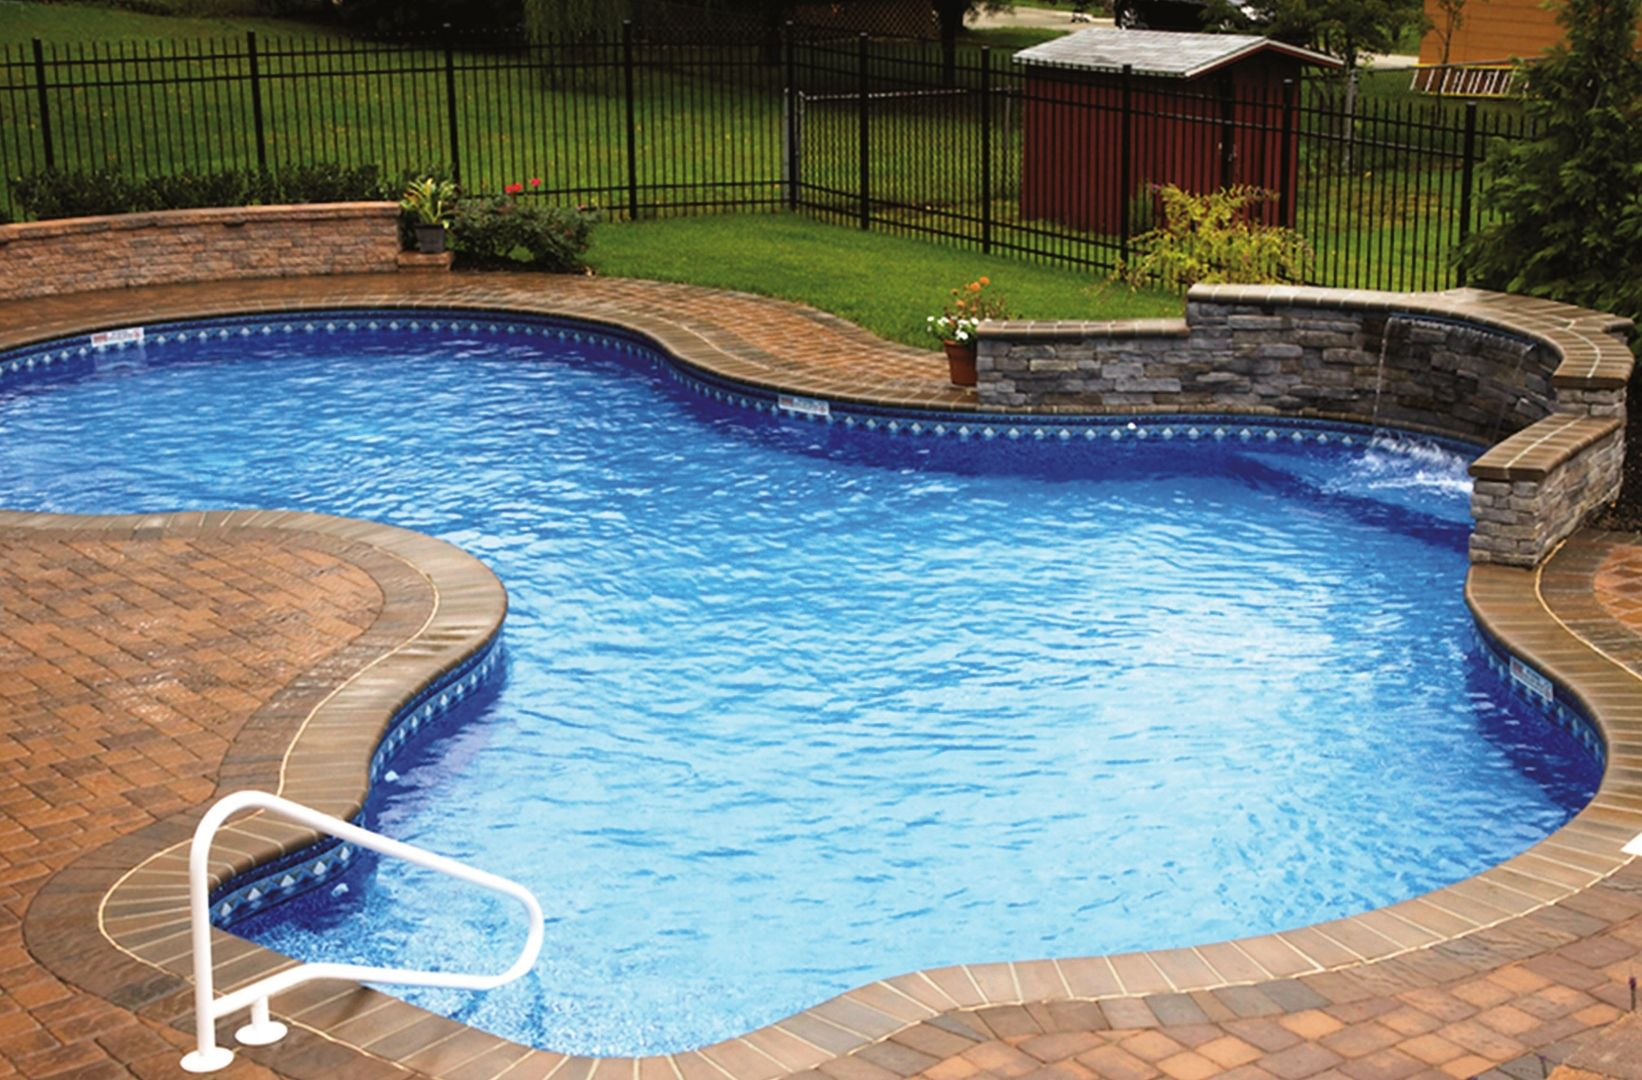 swimming pool backyard ideas photo - 10